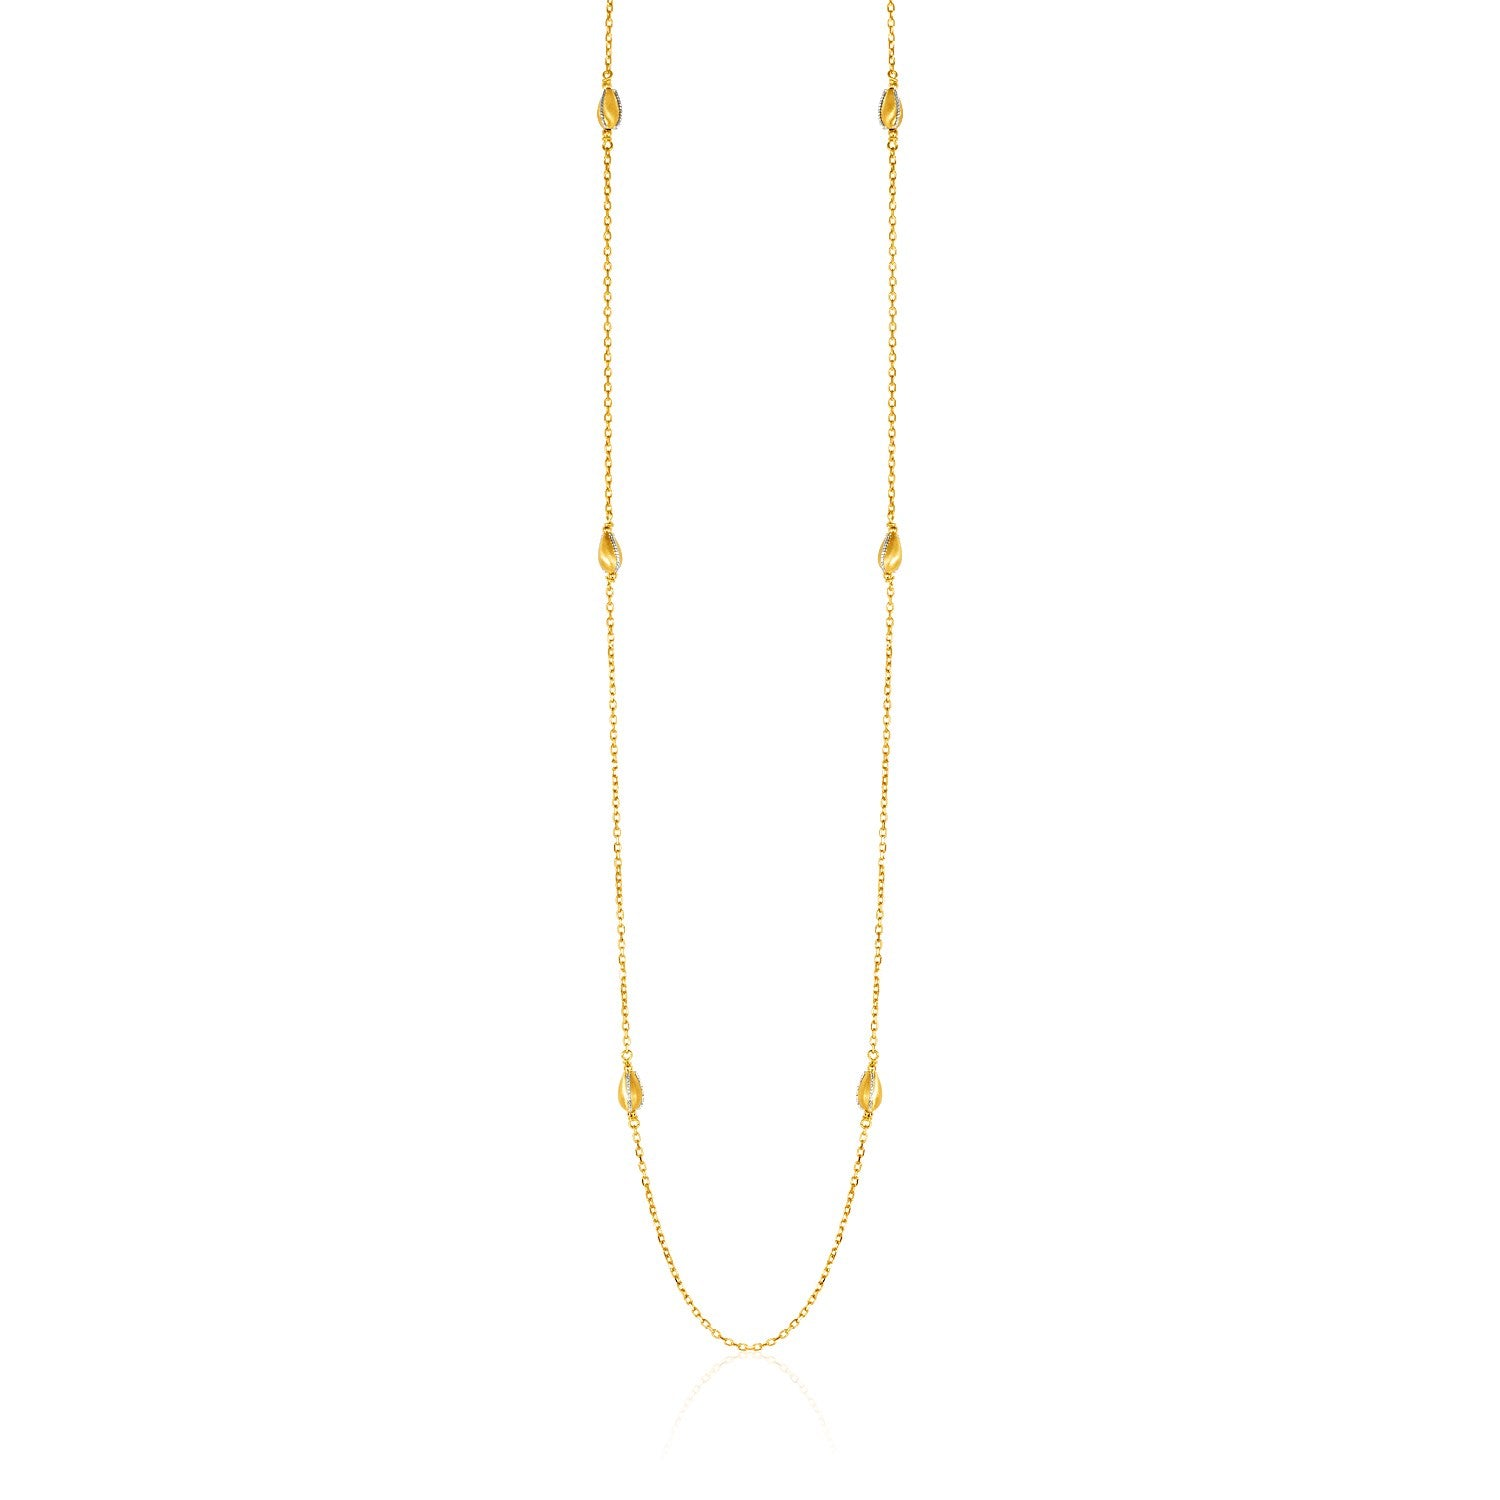 14K Two-Tone Yellow and White Gold Necklace with Teardrop Motifs